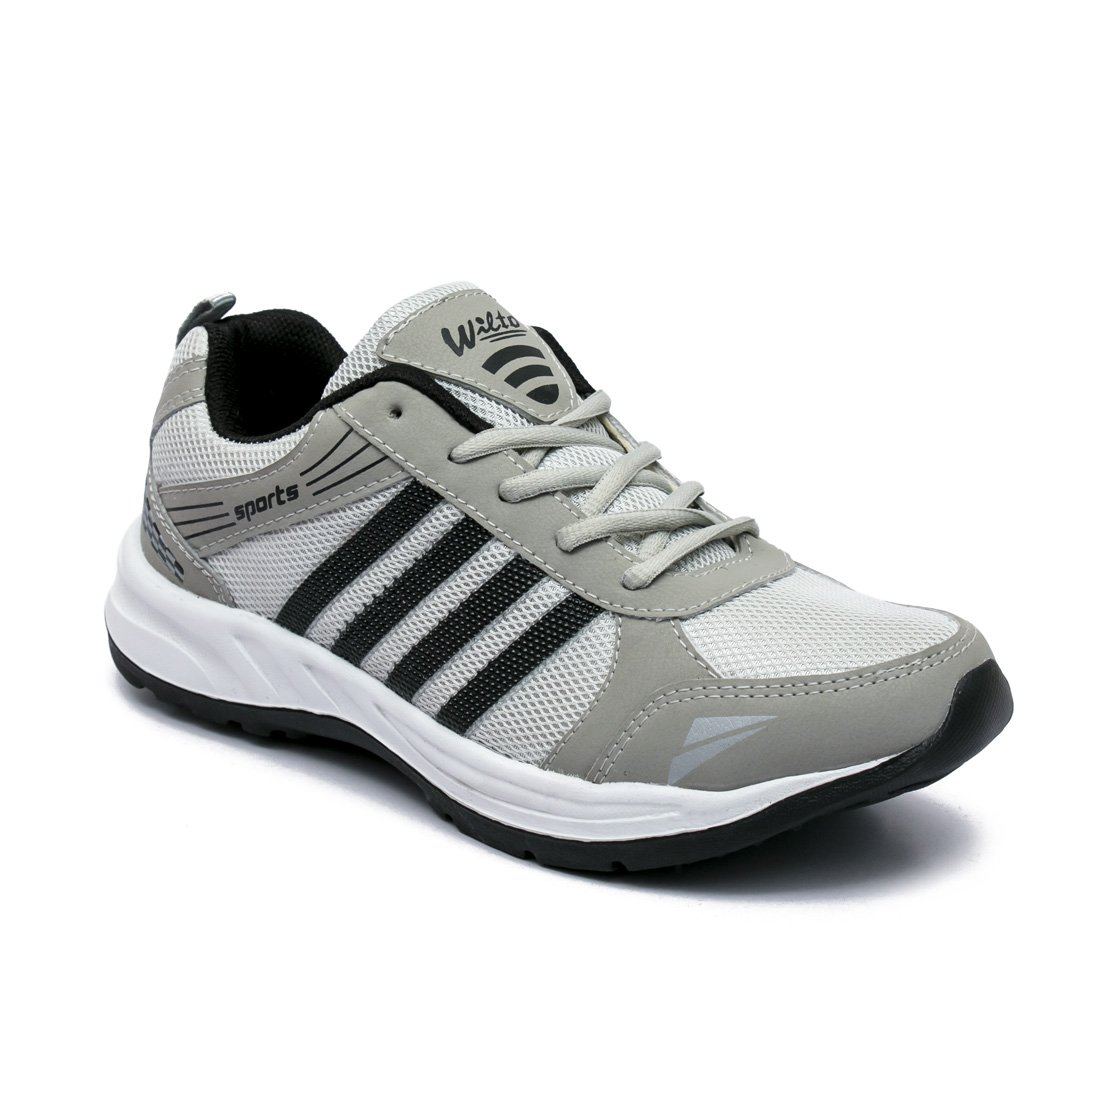 ASIAN Wonder-13 Grey Black Running Shoes for Men